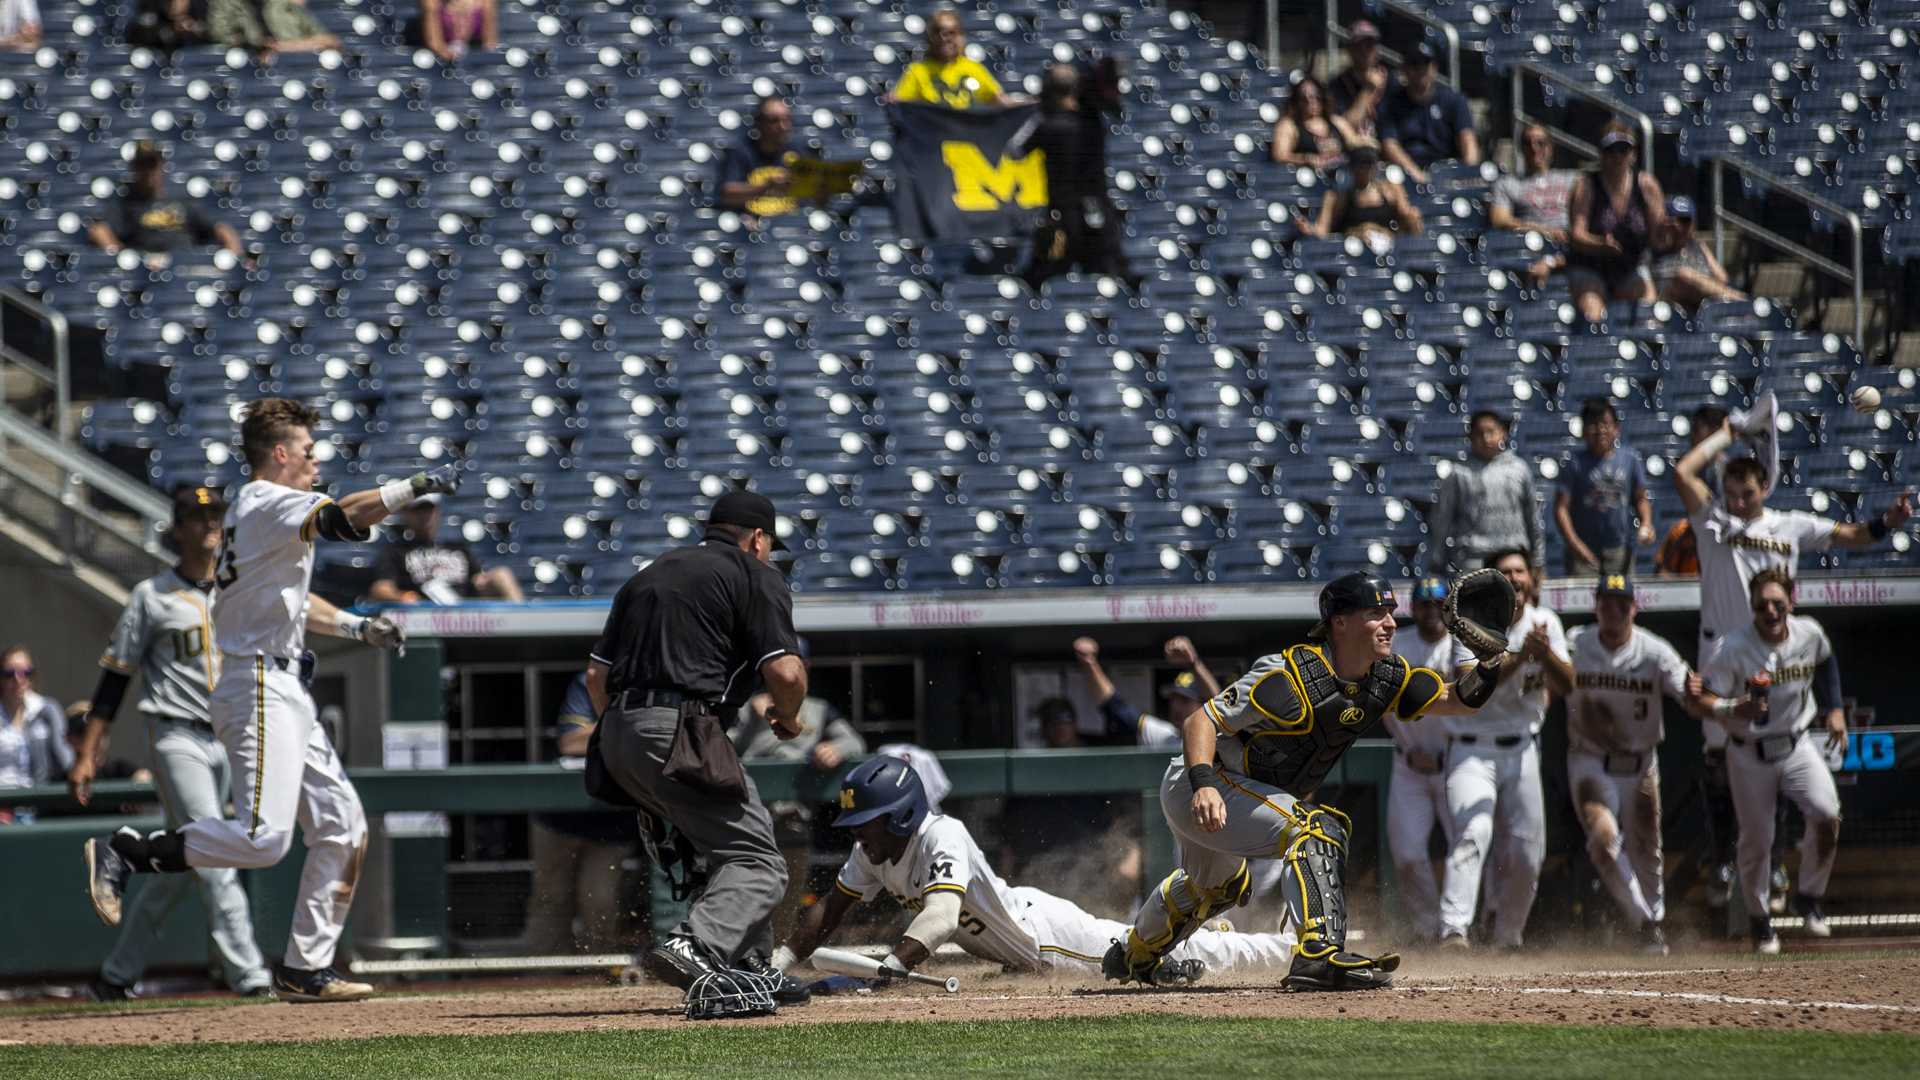 Michigan's Christian Bullock slides into home on a sac fly in to win the game during Iowa's Big Ten tournament Game against Michigan at TD Ameritrade Park in Omaha, Neb. on Wed. May 23, 2018. The Wolverines defeated the Hawkeyes 2-1 in extra innings. (Nick Rohlman/The Daily Iowan)